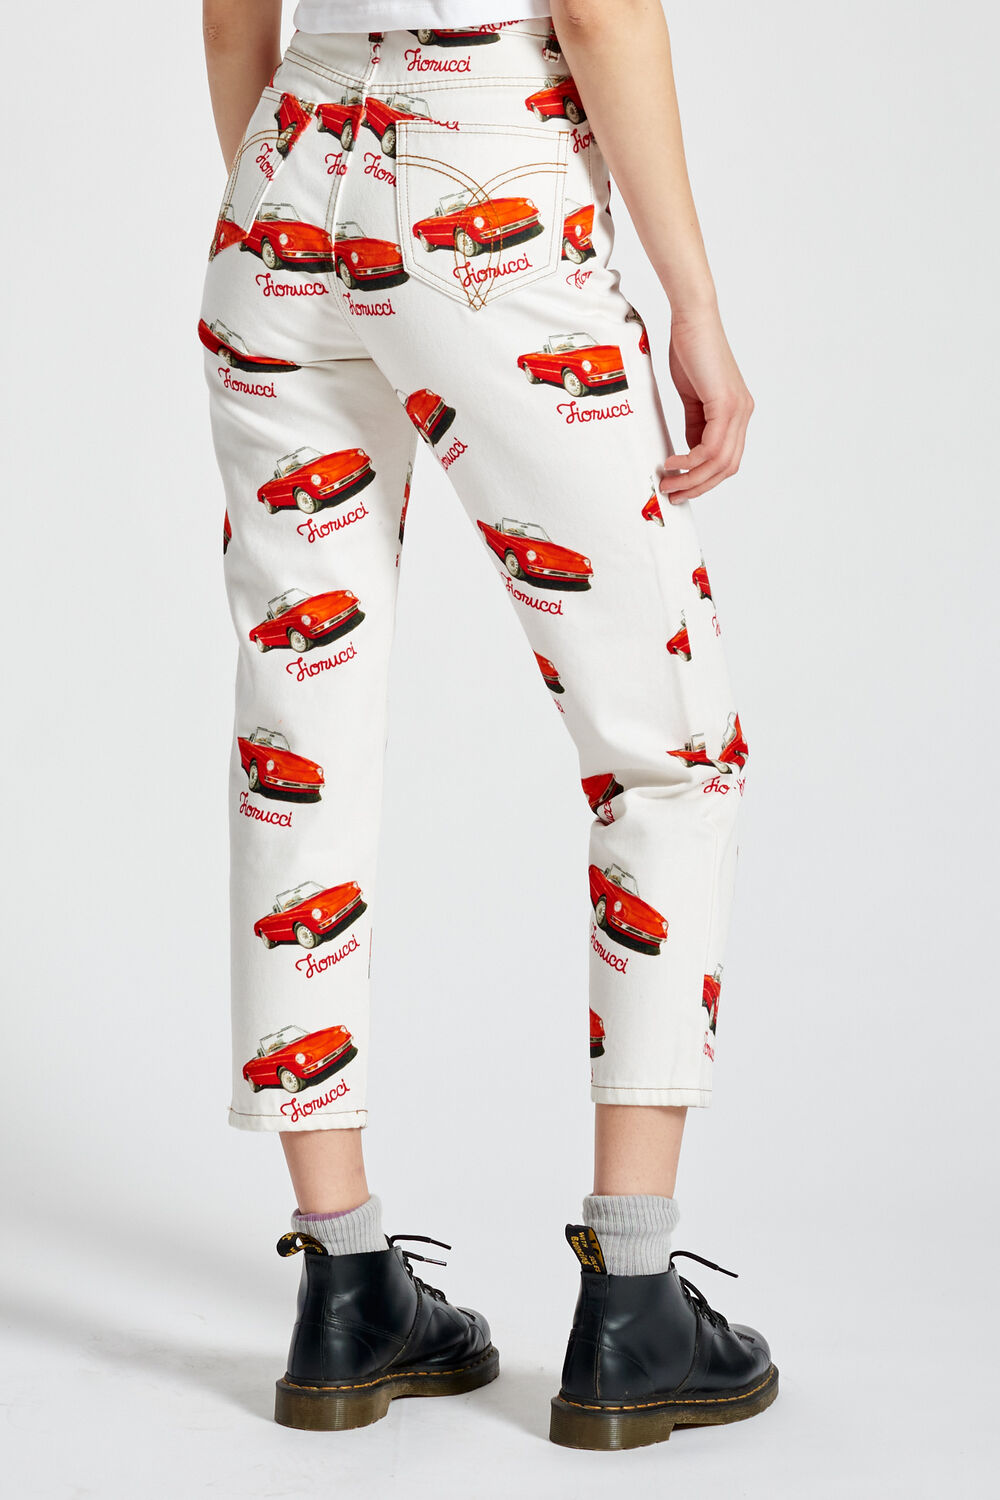 Racing Car Graphic Print Tara Tapered Jeans White